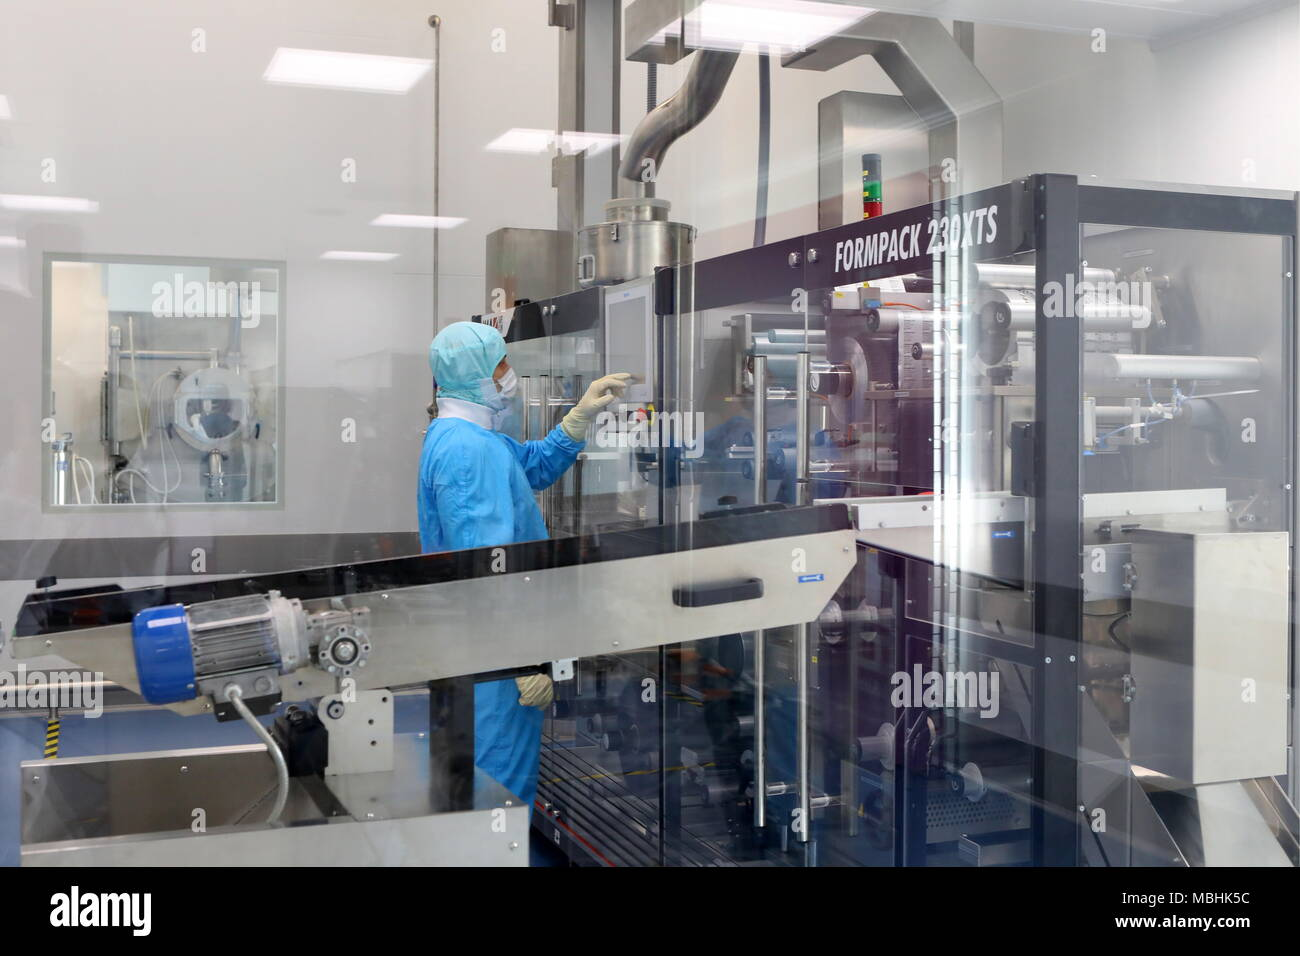 Belgorod, Russia. 10th Apr, 2018. BELGOROD, RUSSIA - APRIL 10, 2018: A worker by a new production line of Abbott's hormonal drugs at the Veropharm pharmaceutical plant. Anton Vergun/TASS Credit: ITAR-TASS News Agency/Alamy Live News - Stock Image